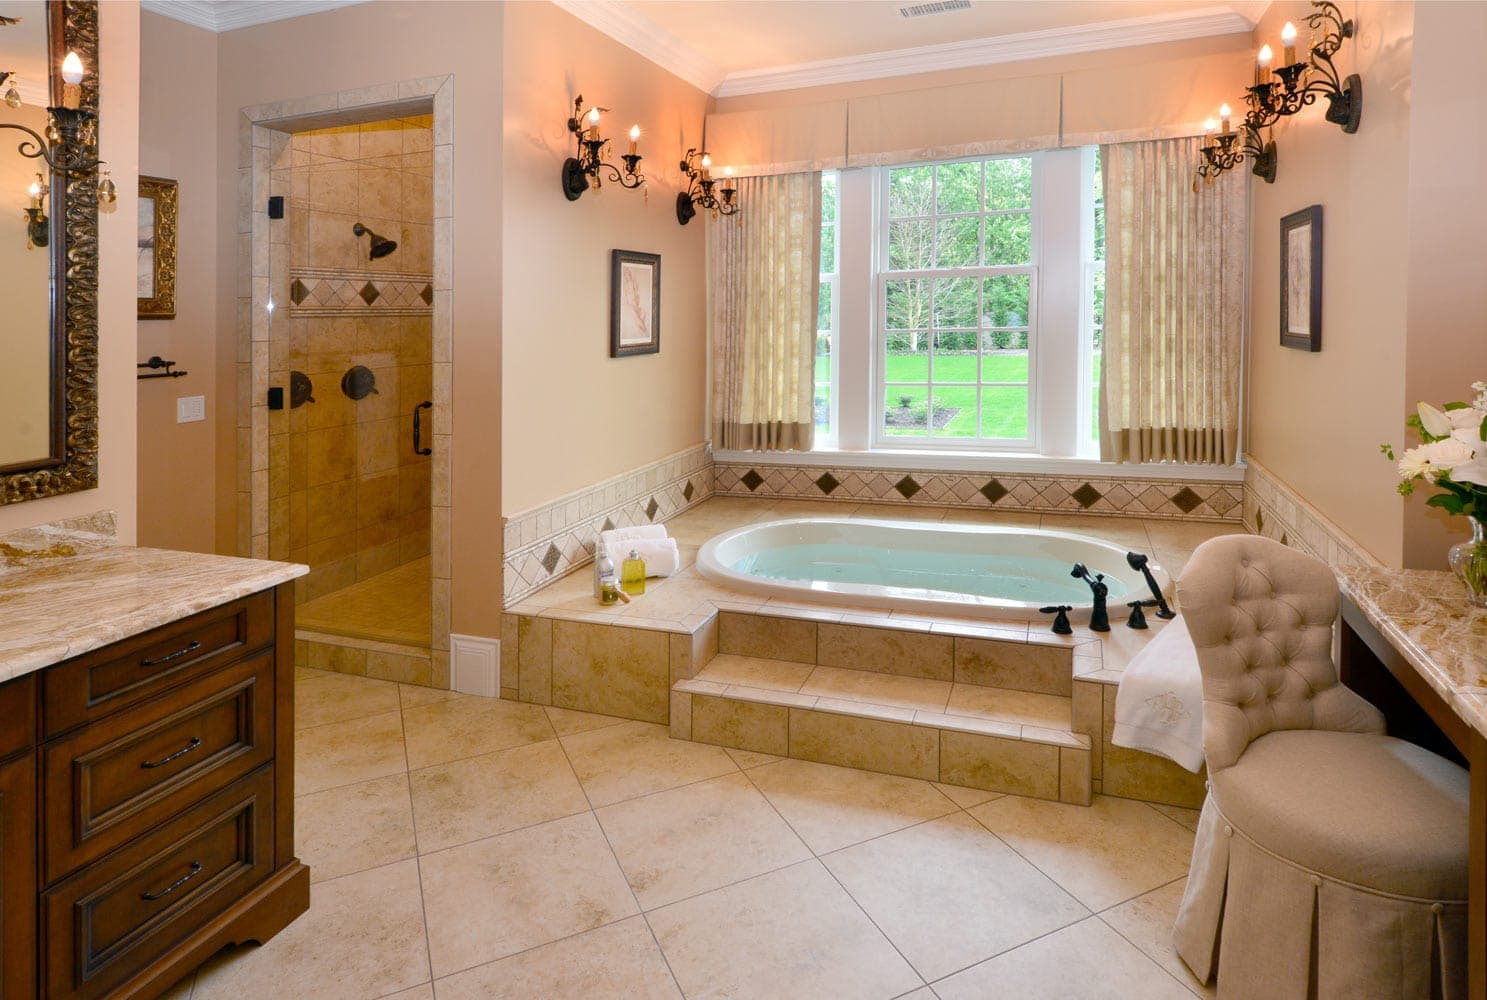 Grand Ridge Master Bathroom Interior Design